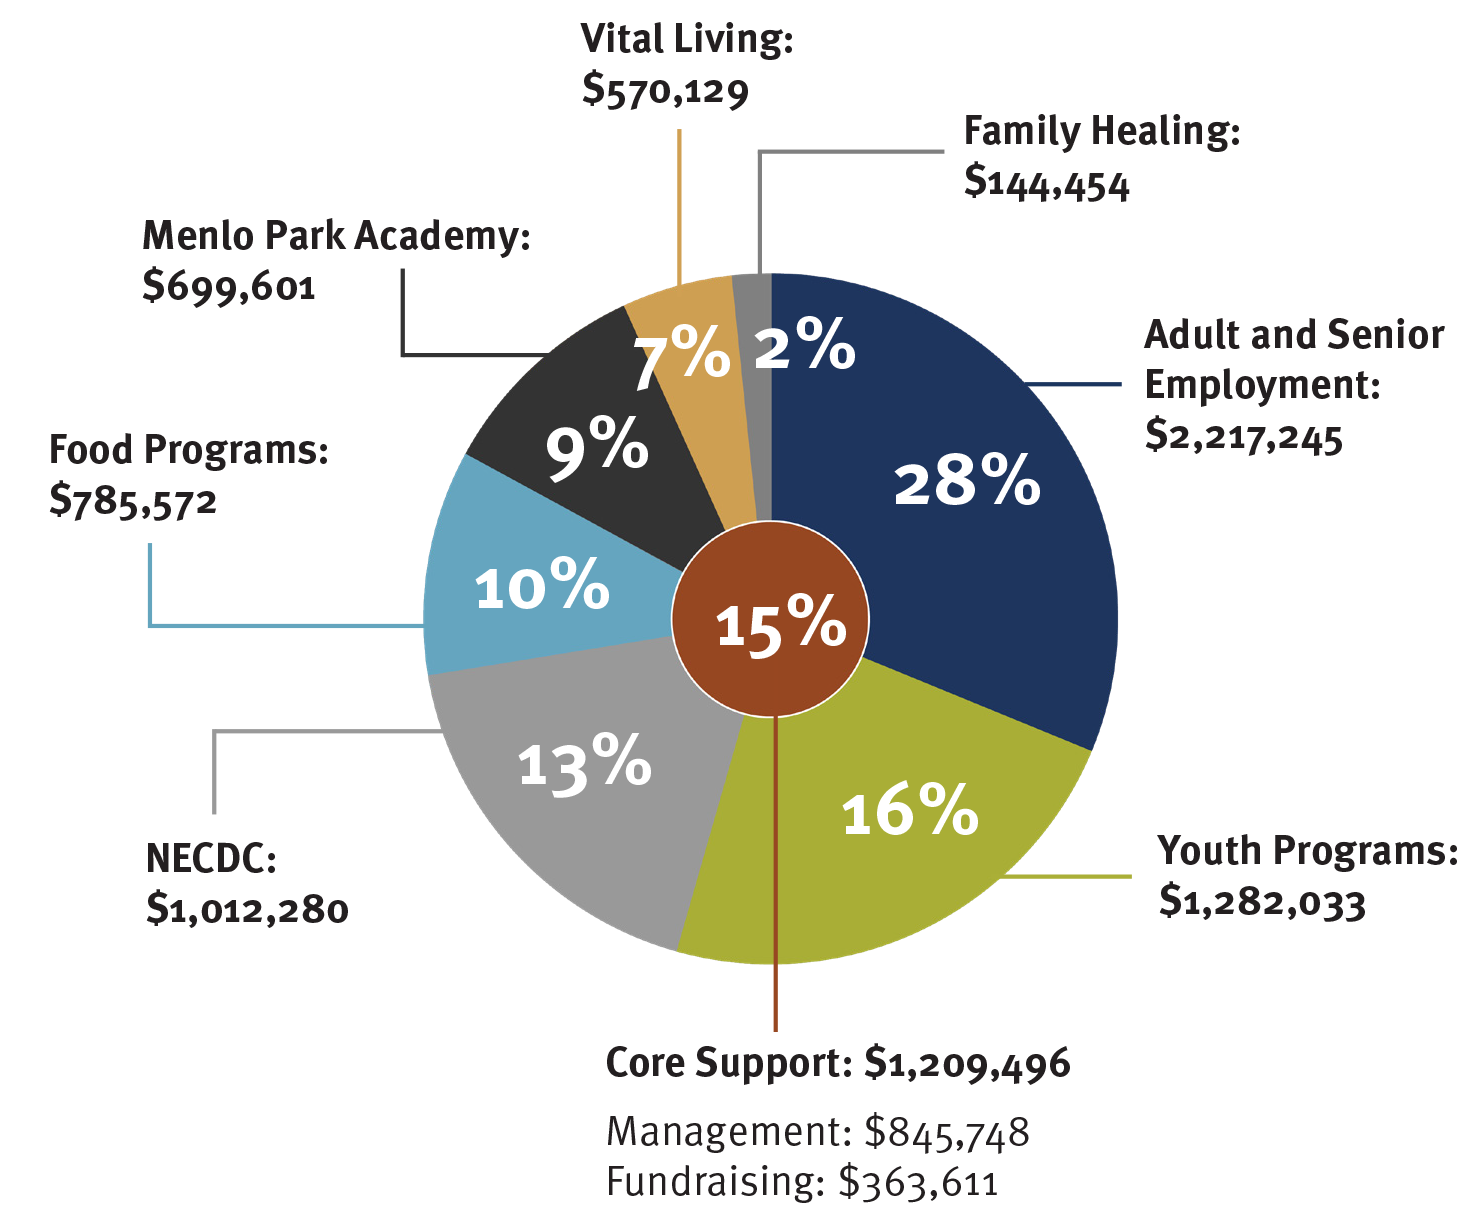 A pie chart with the following sections:  Adult and Senior Employment  ($2,217,245 / 28%),  Youth Programs  ($1,282,033 / 16%),  Core Support  ($1,209,496 / 15%) - subdivided into Management ($845,748) and Fundraising ($363,611),  NECDC  ($1,012,280 / 13%),  Food Programs  ($785,572 / 10%),  Menlo Park Academy  ($699,601, 9%),  Vital Living  ($570,129 / 7%),  Family Healing  ($144,454, / 2%)